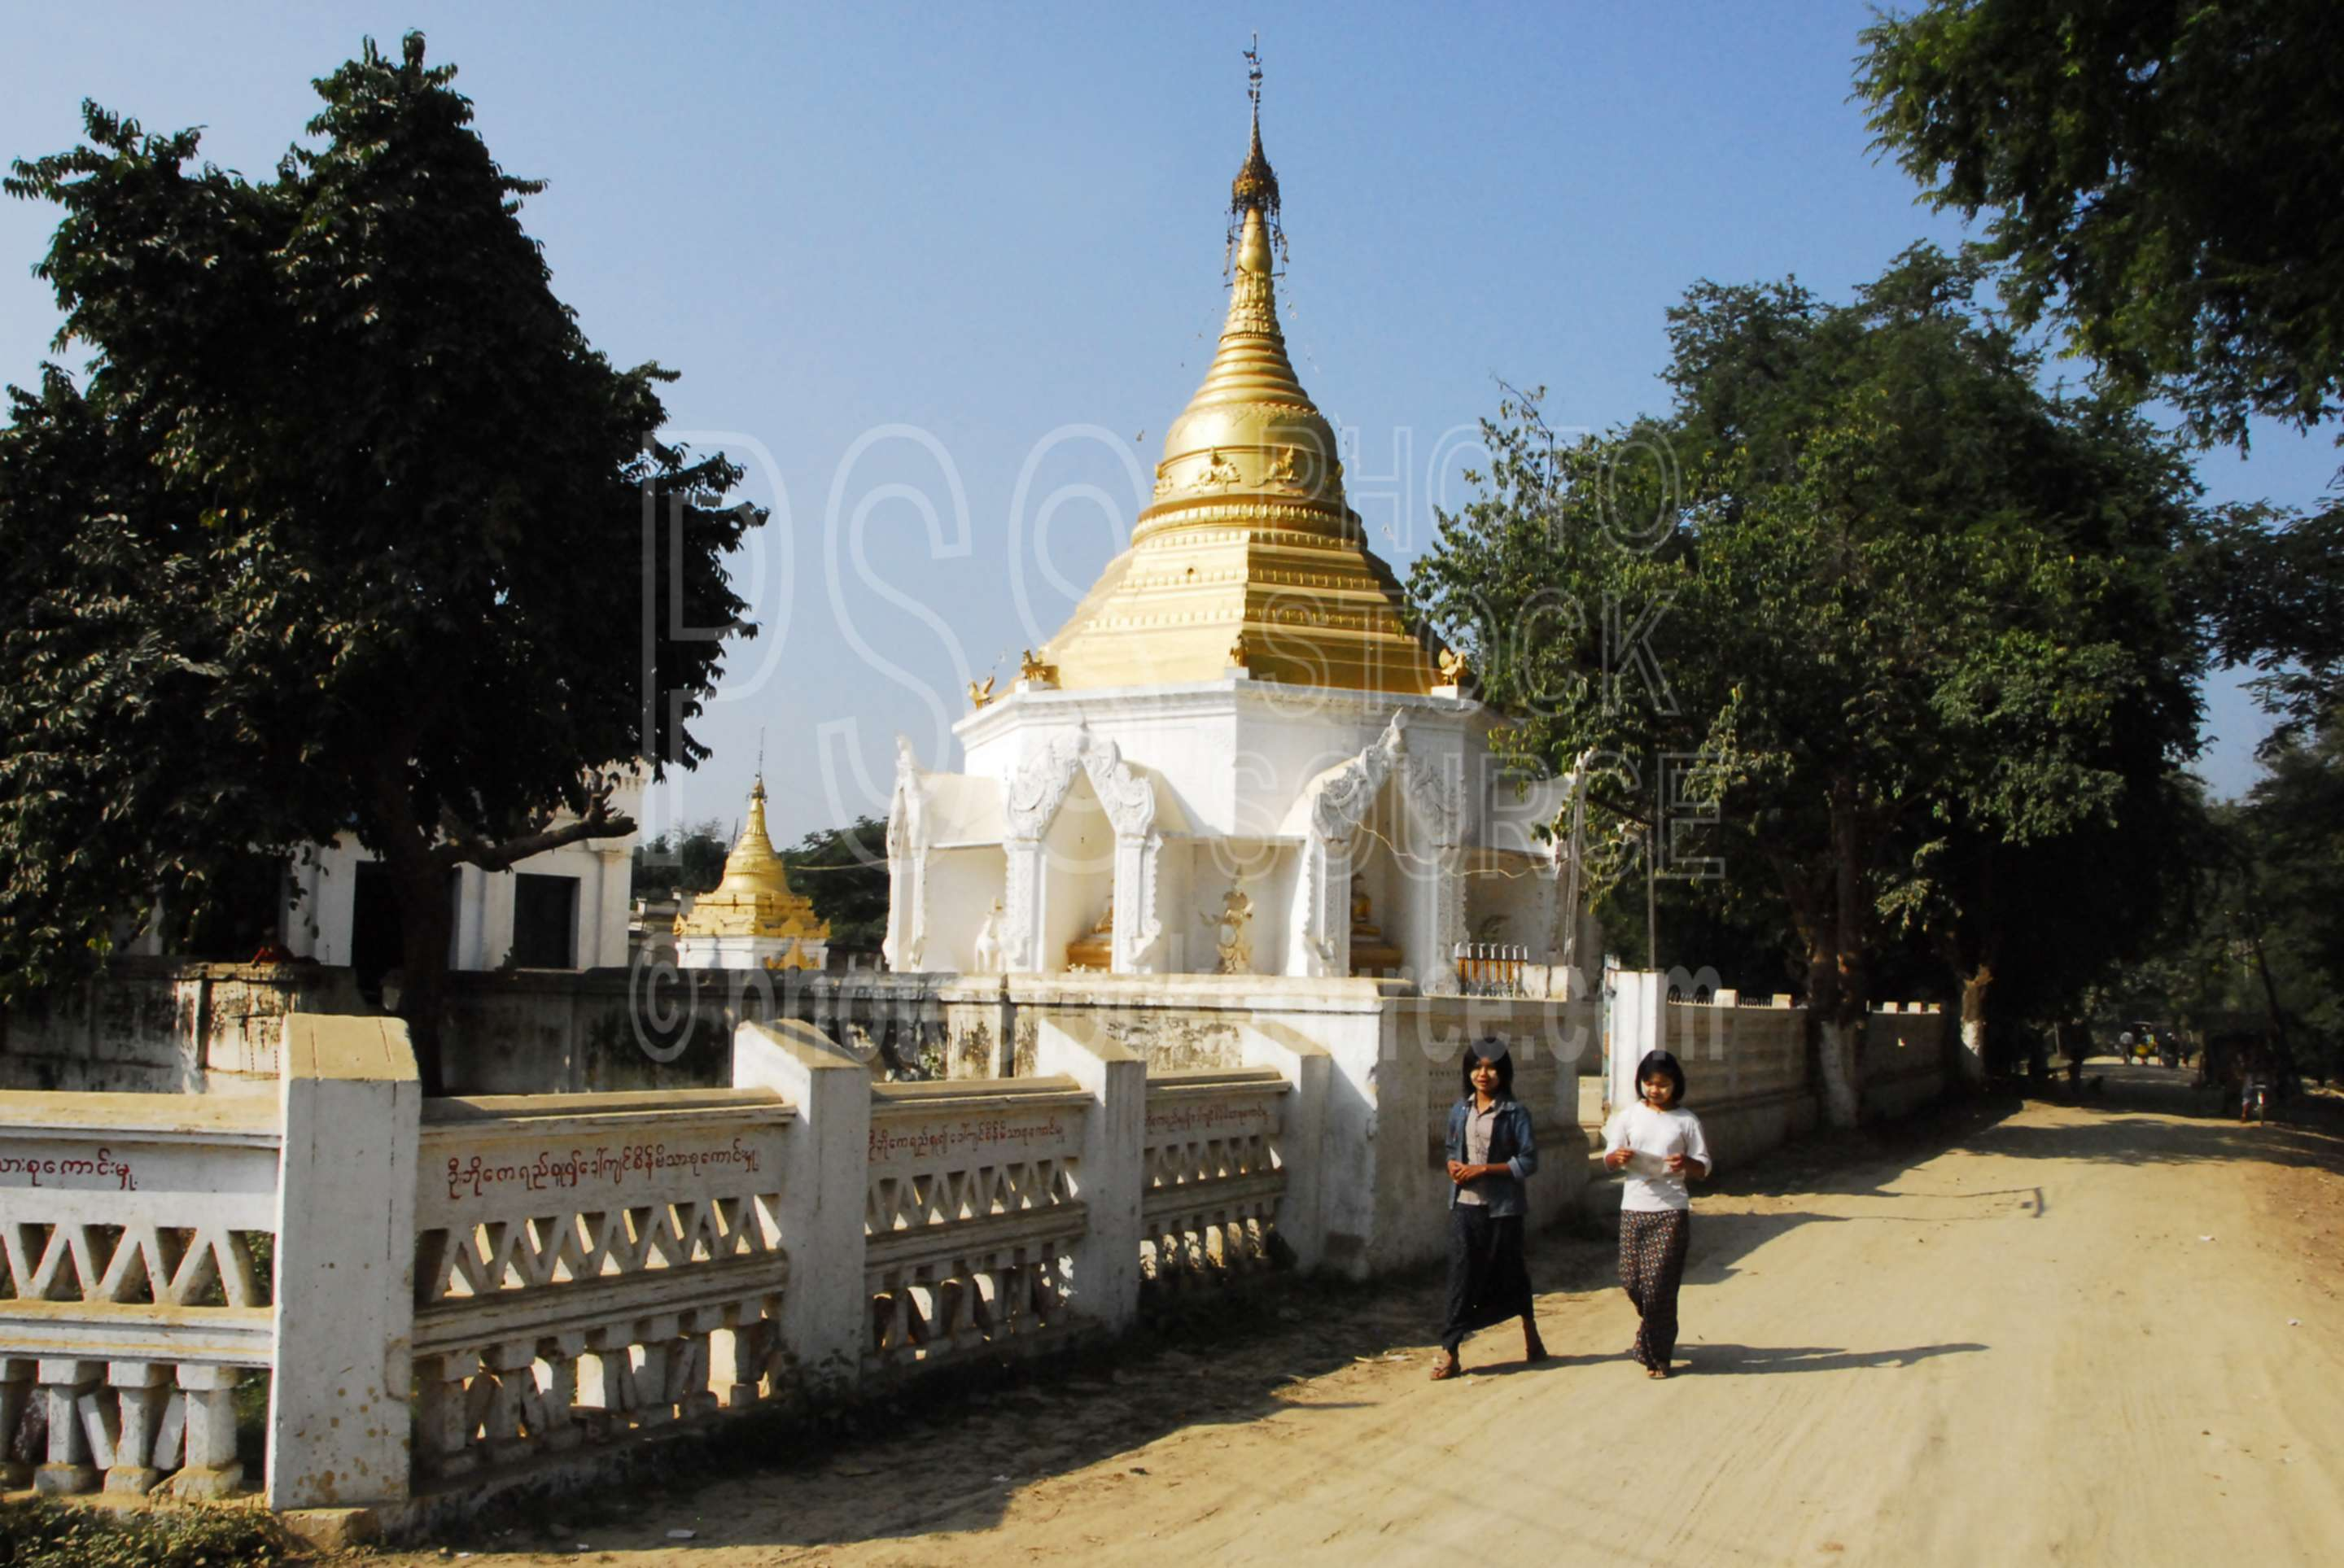 Small Pagoda,myanmar,pagoda,temple,people,girls,young,walking,inwa,hathawaddy,ava